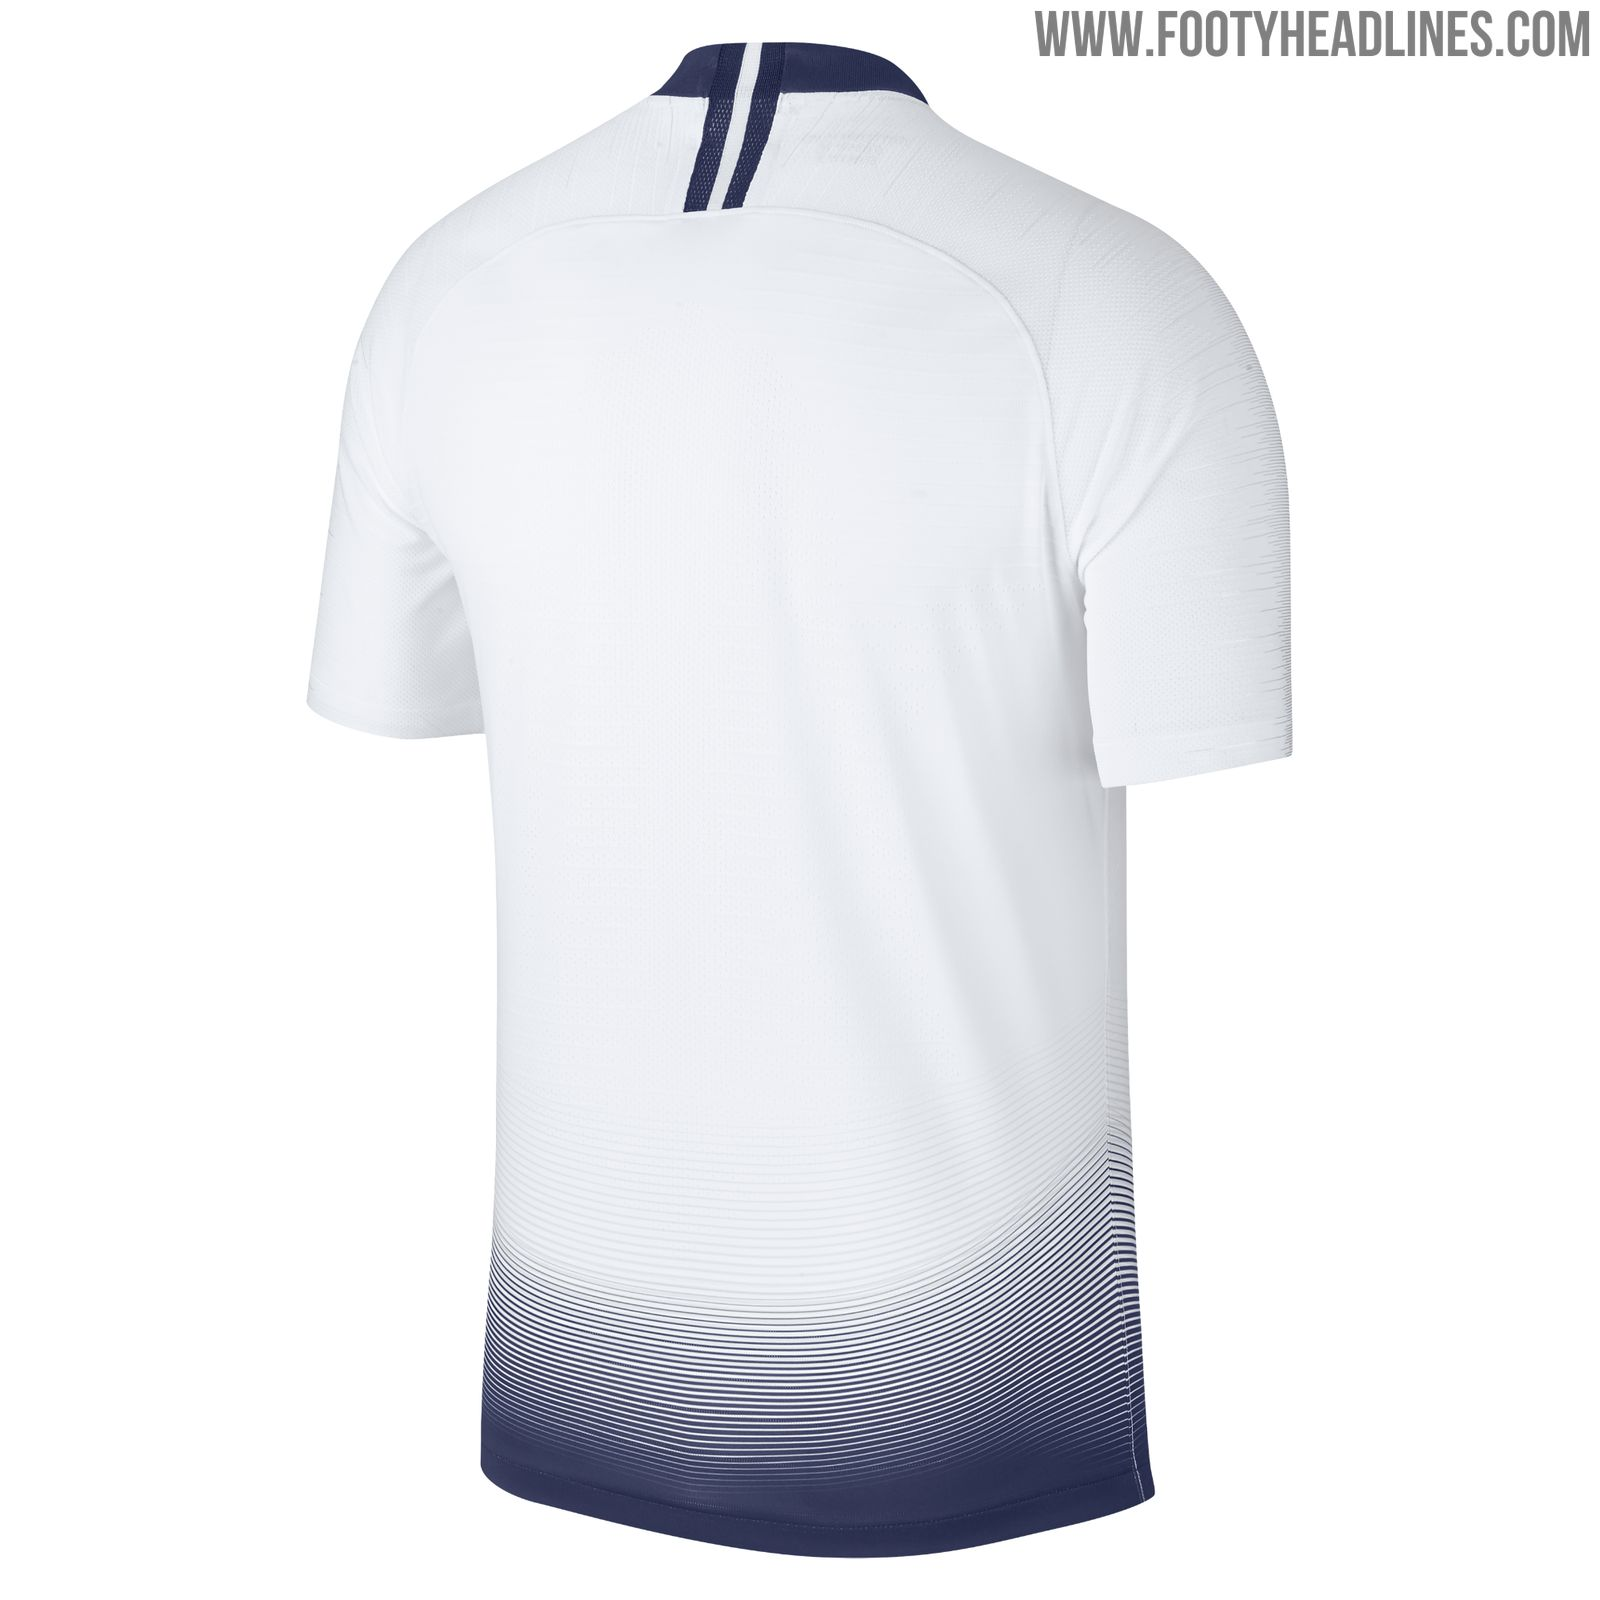 07c98d22 The Nike Tottenham Hotspur 2018-19 home jersey boasts a modern gradient  design to stand out from Nike's classic first Tottenham jersey.